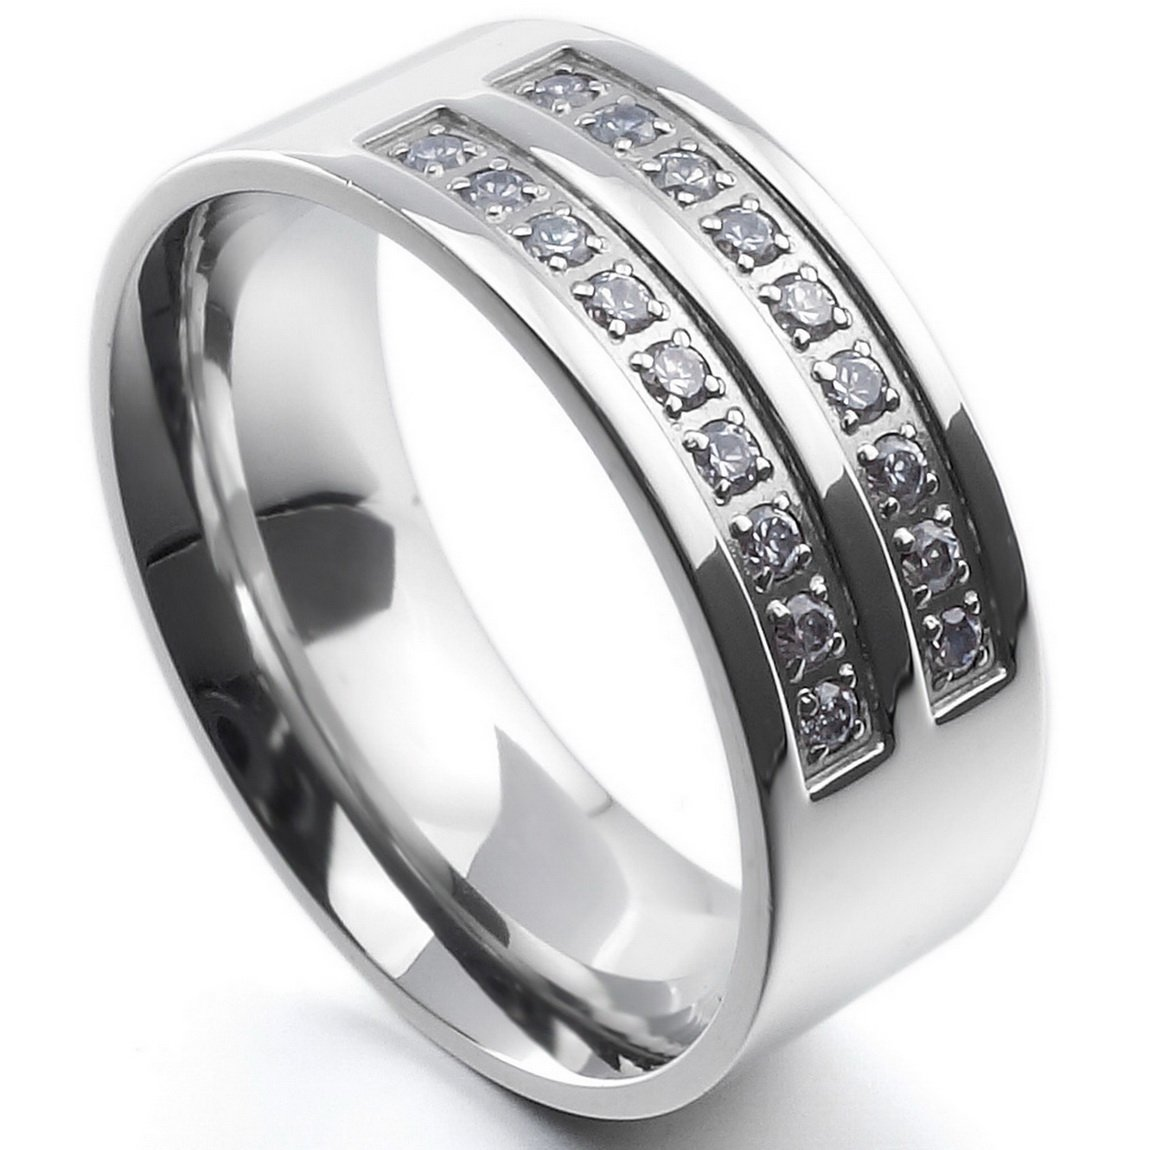 INBLUE Men's 8mm Stainless Steel Ring CZ Silver Tone Comfort Fit Band Wedding Size12 by INBLUE (Image #3)